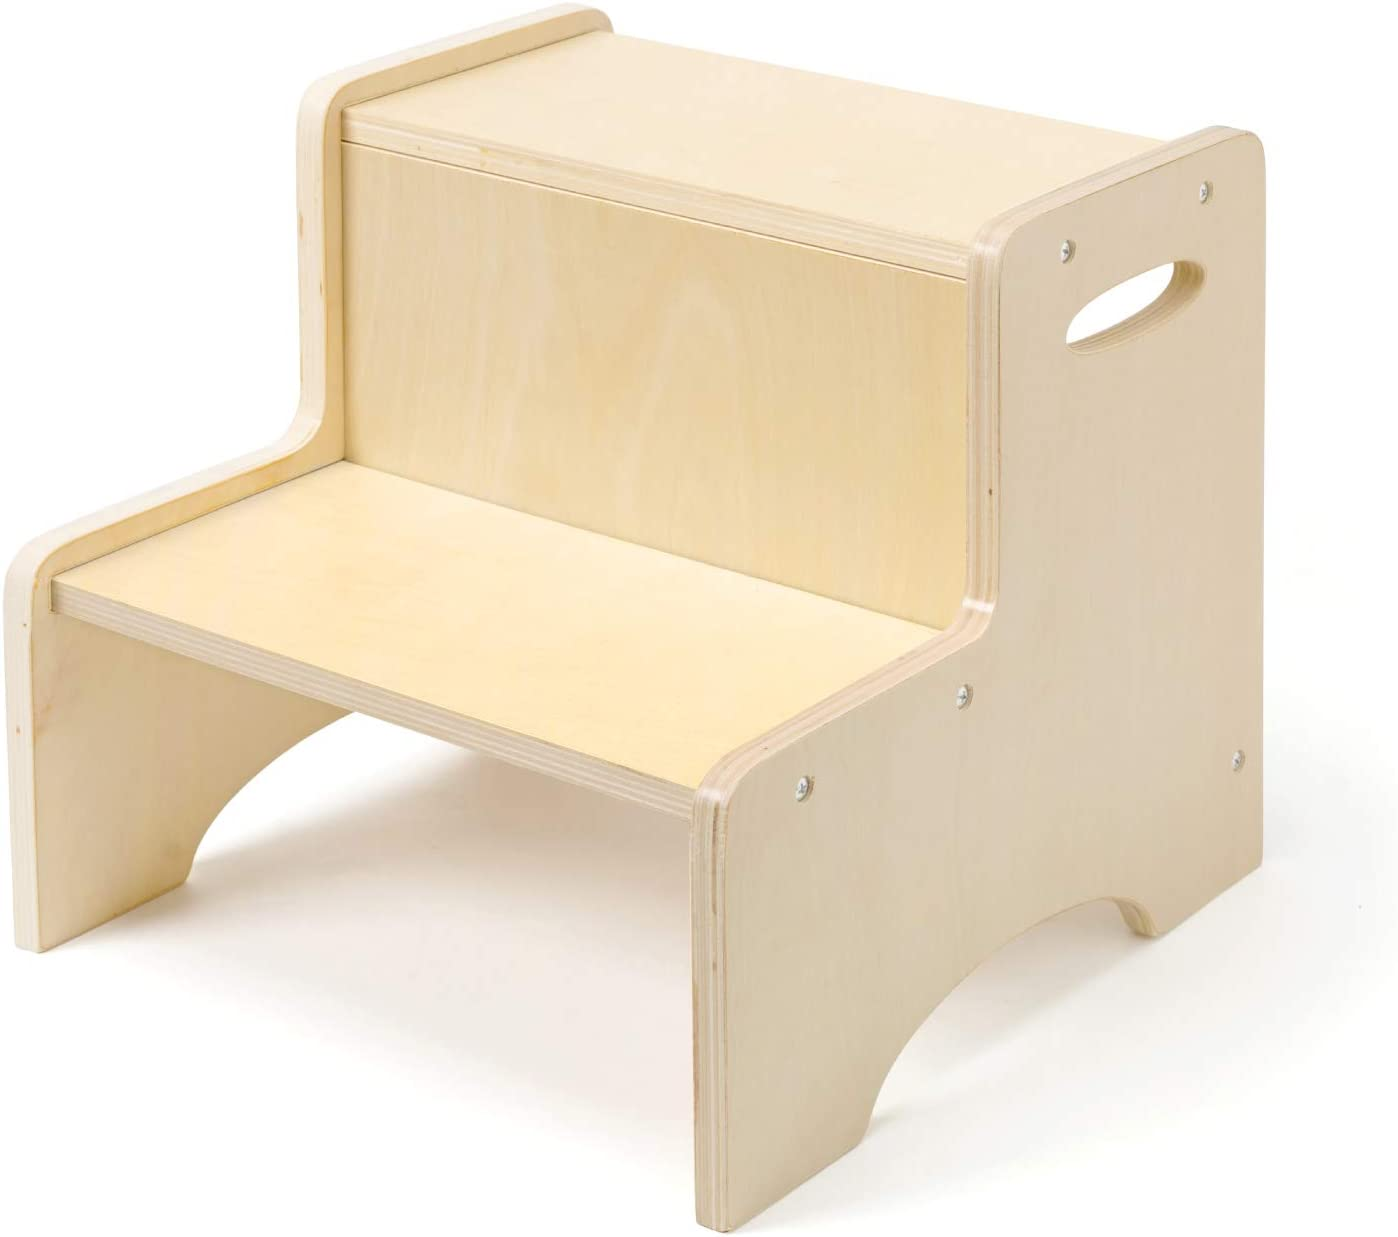 Step Foot Stool Bathroom Toddler Stand On Potty Training Bedroom Living Room for Kids Kitchen